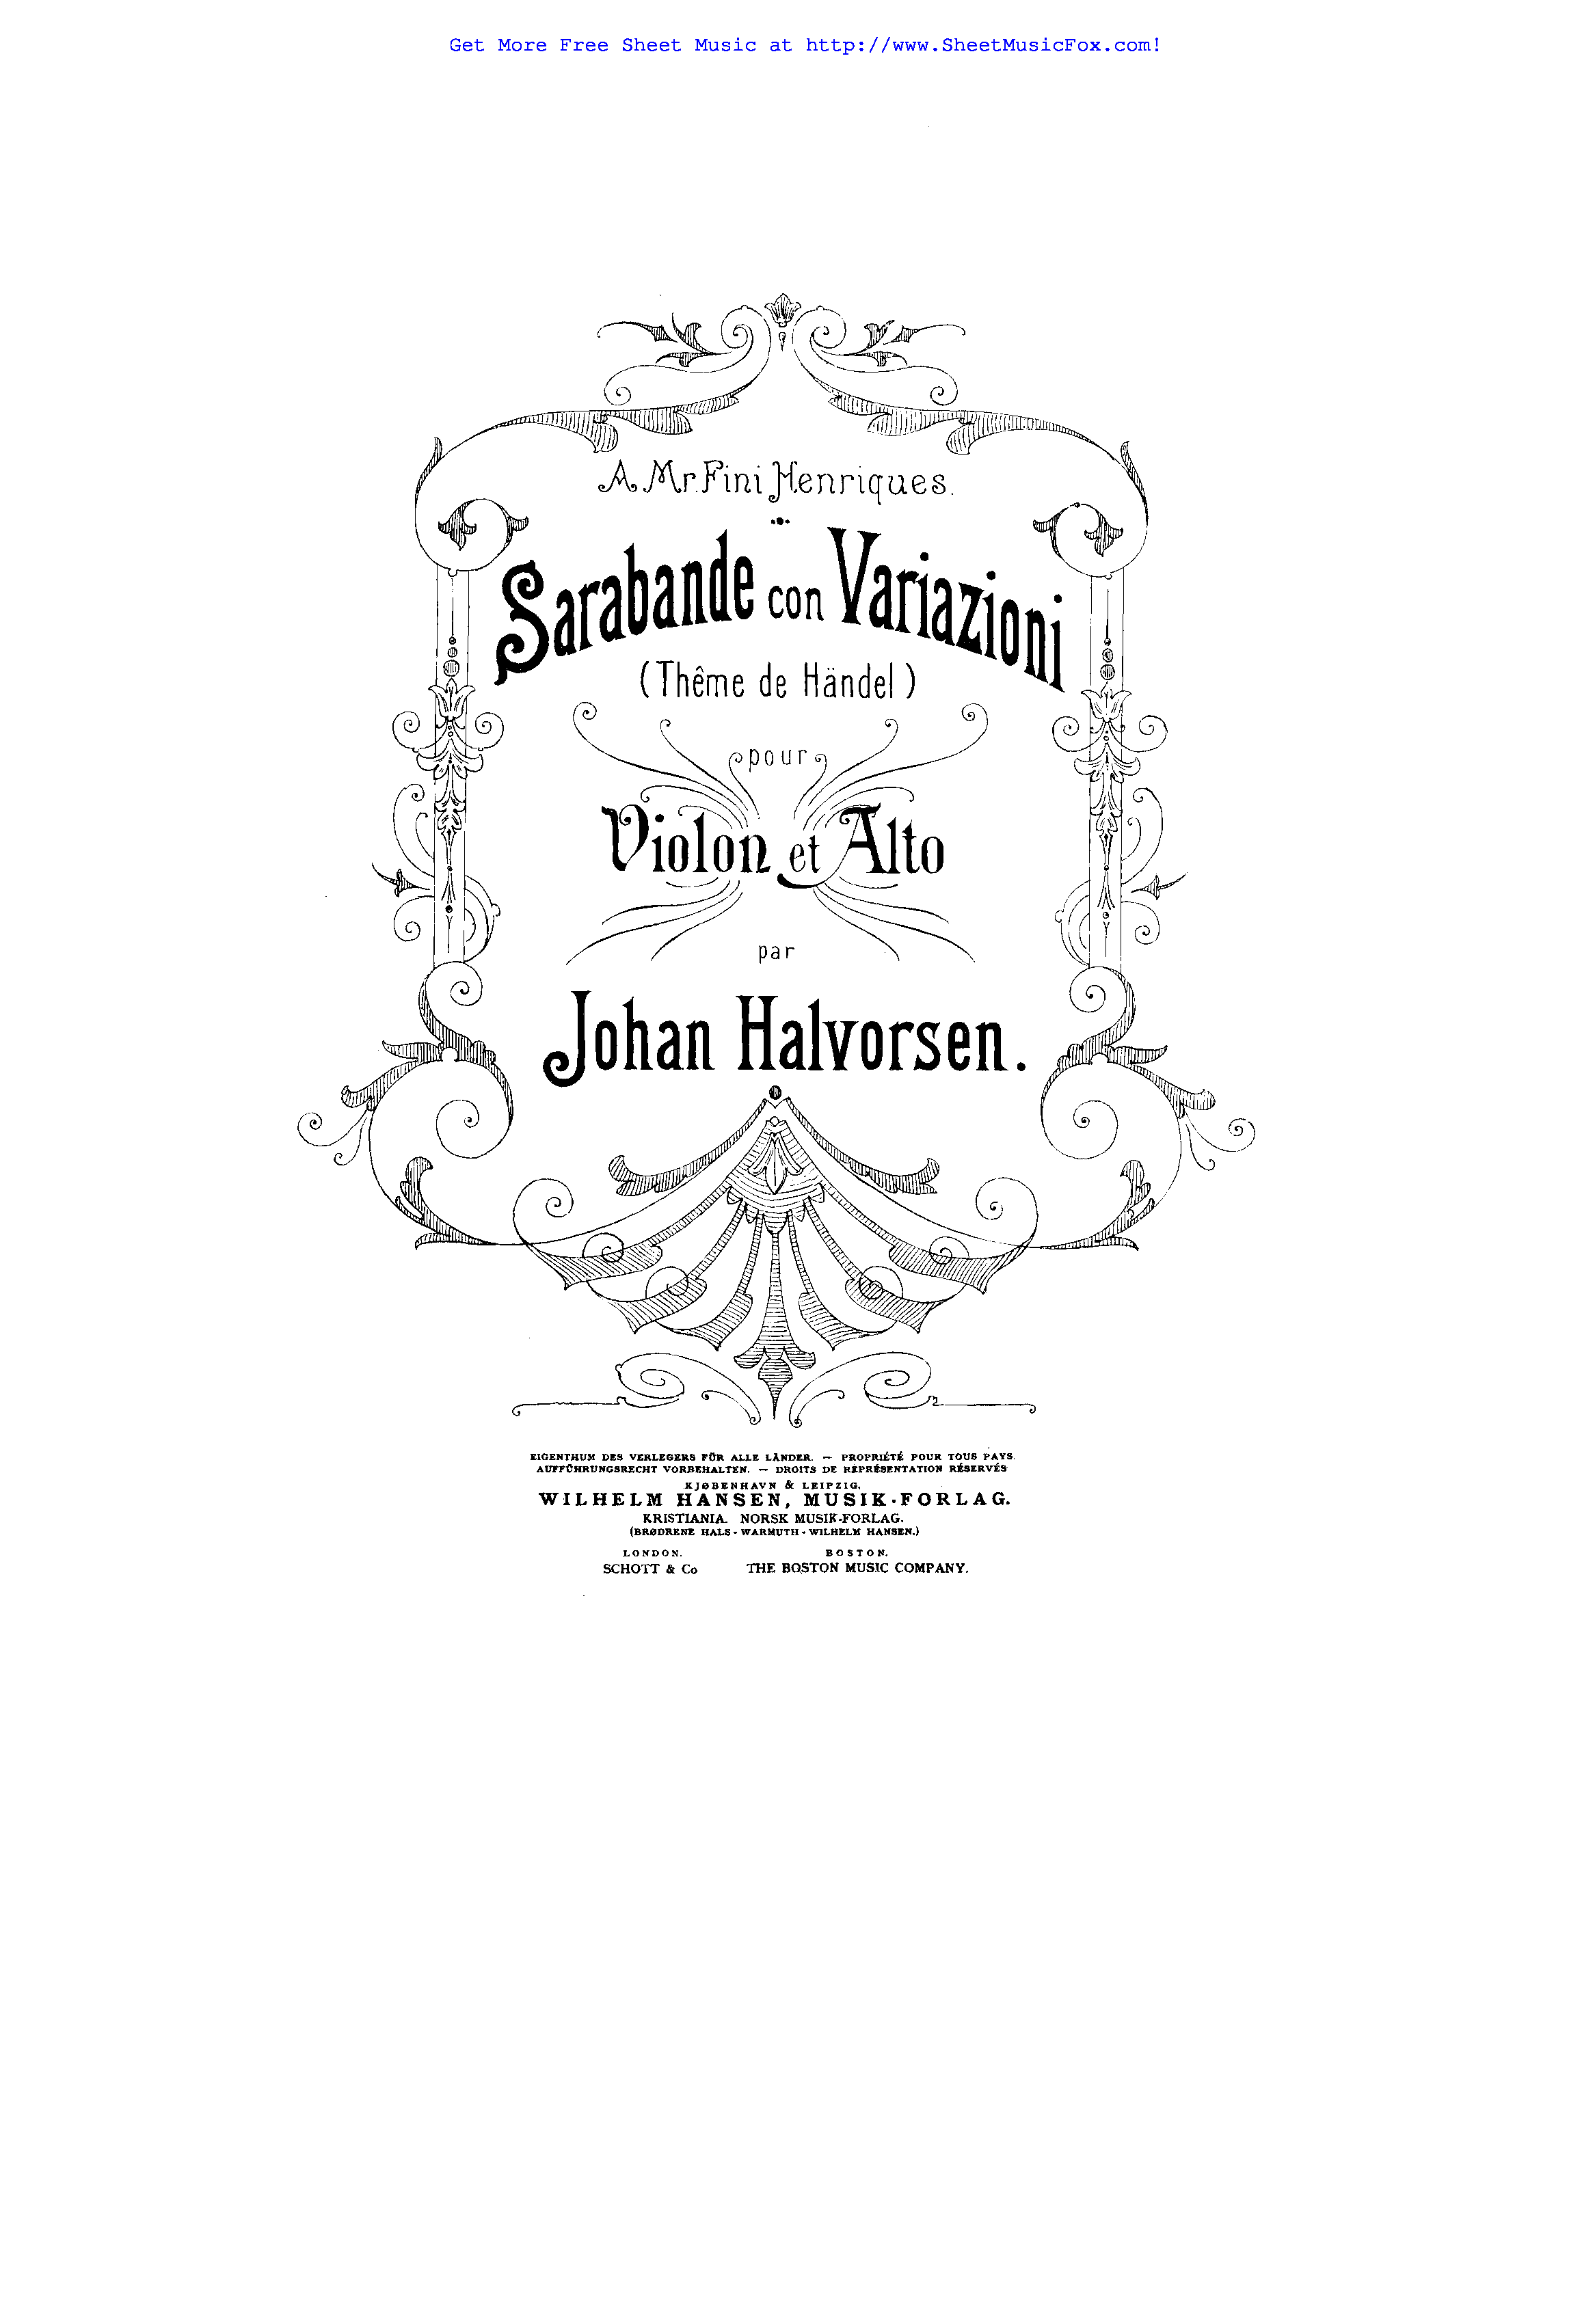 Free sheet music for Sarabande con variazioni, Thême de